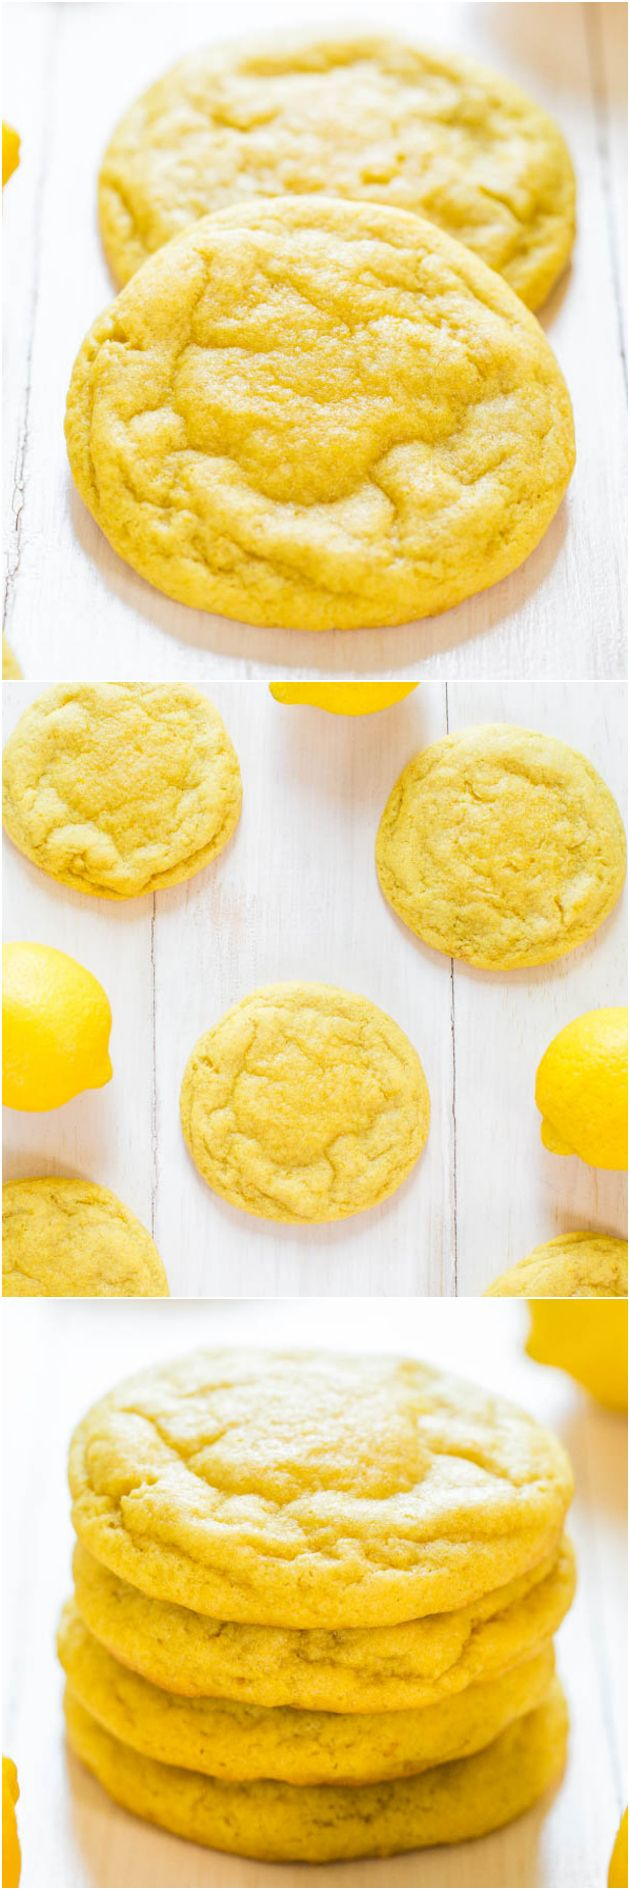 Soft and Chewy Lemon Cookies - Packed with big, bold lemon flavor for all you lemon lovers! They're soft, chewy and not at all cakey! A perfect springtime cookie for #MothersDay #Brunch !